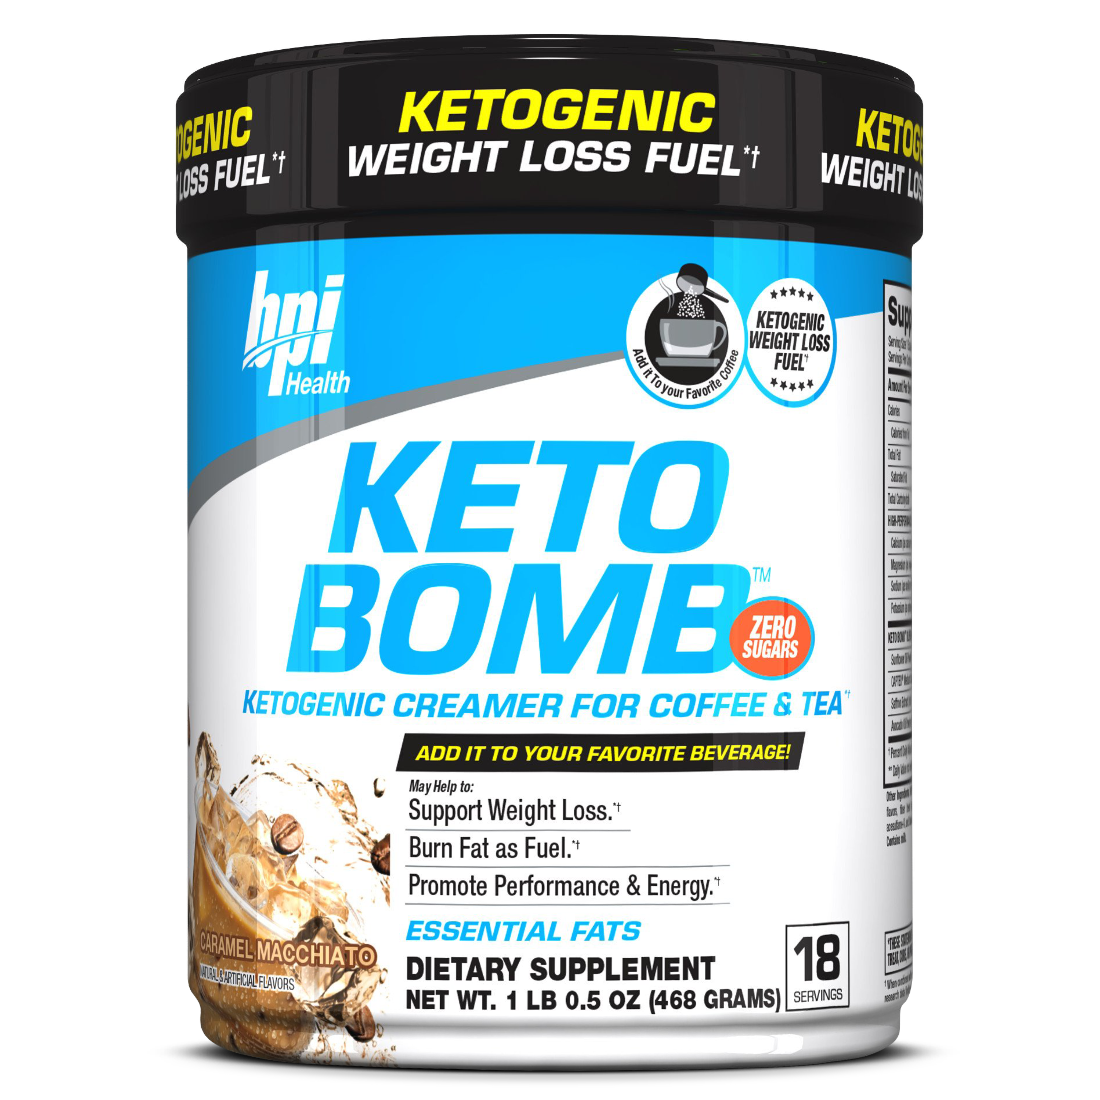 The World's first KETO creamer